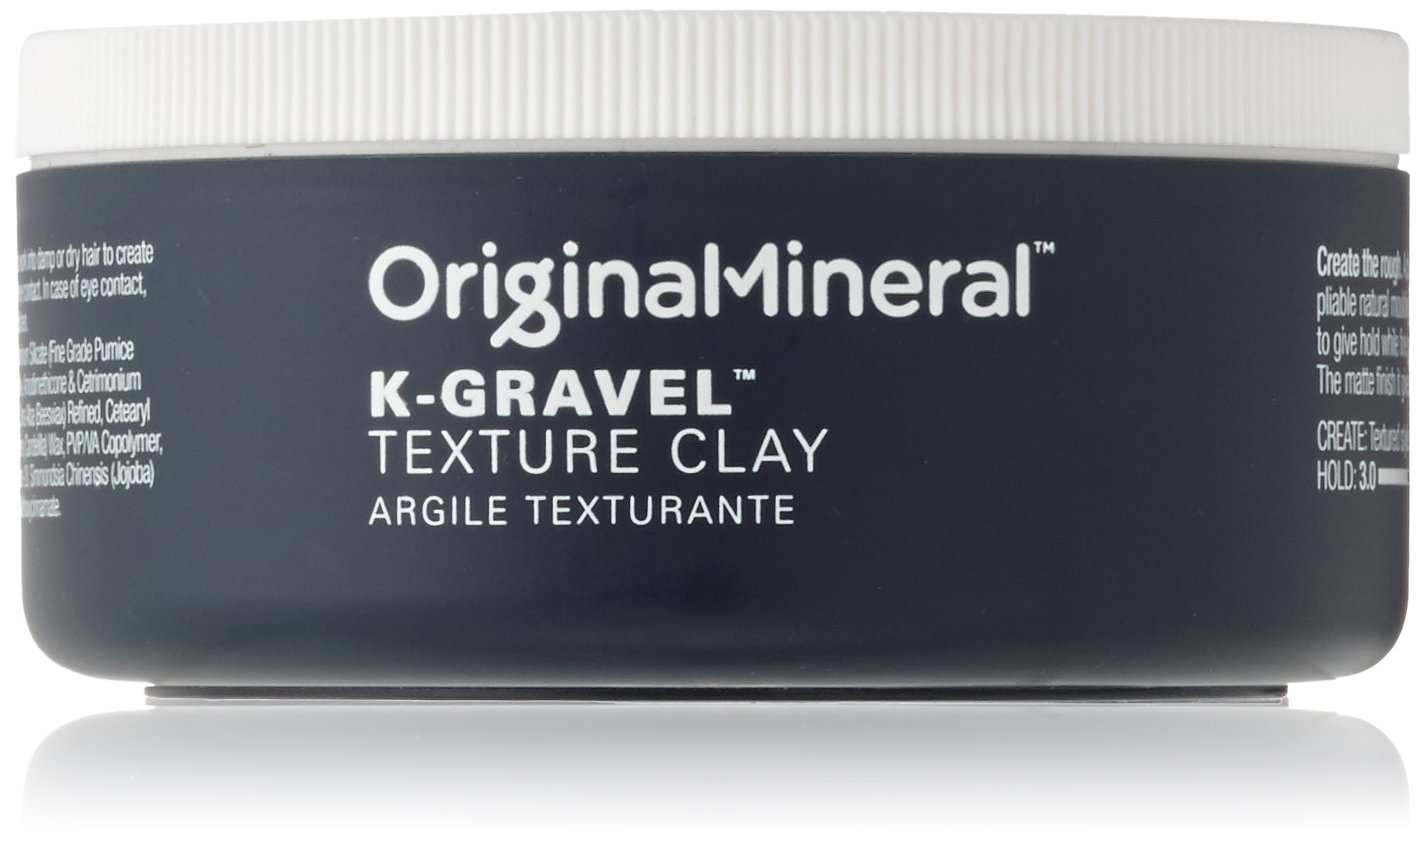 Original Mineral K-Gravel Texture Clay - 3.5 oz by O&M Original Mineral